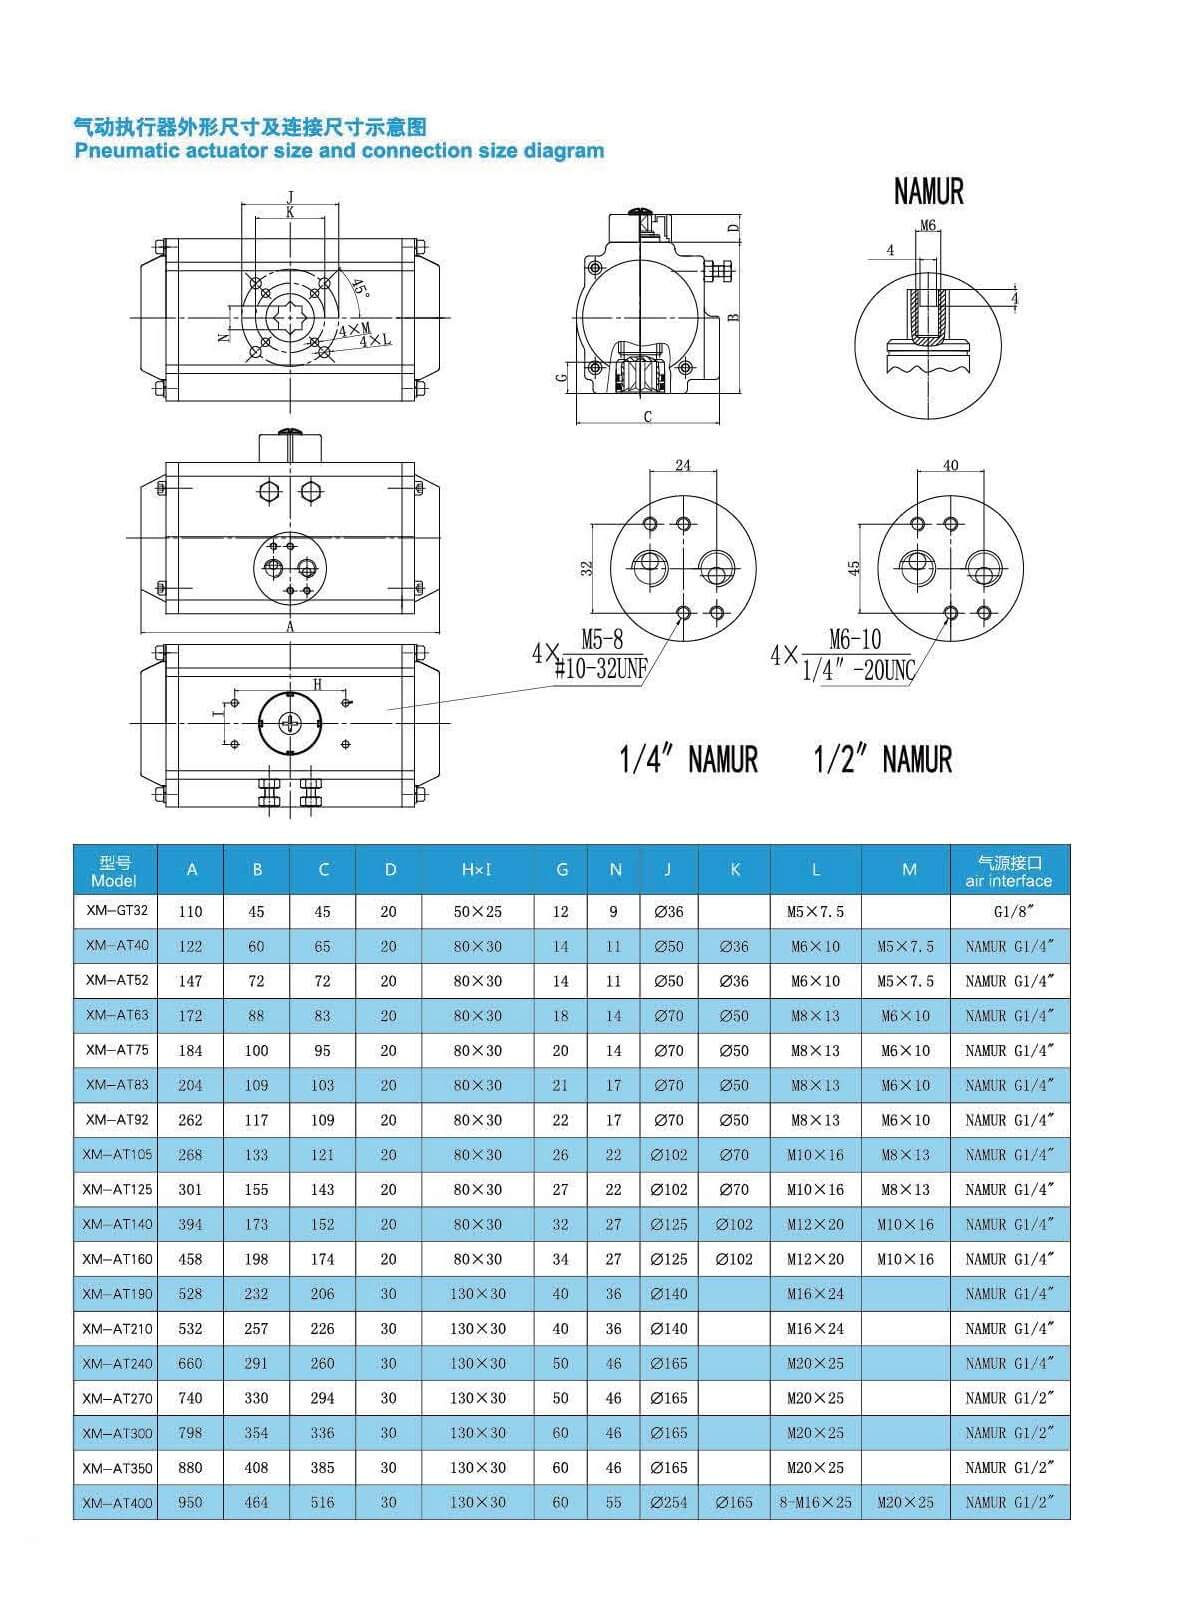 actuator connection size